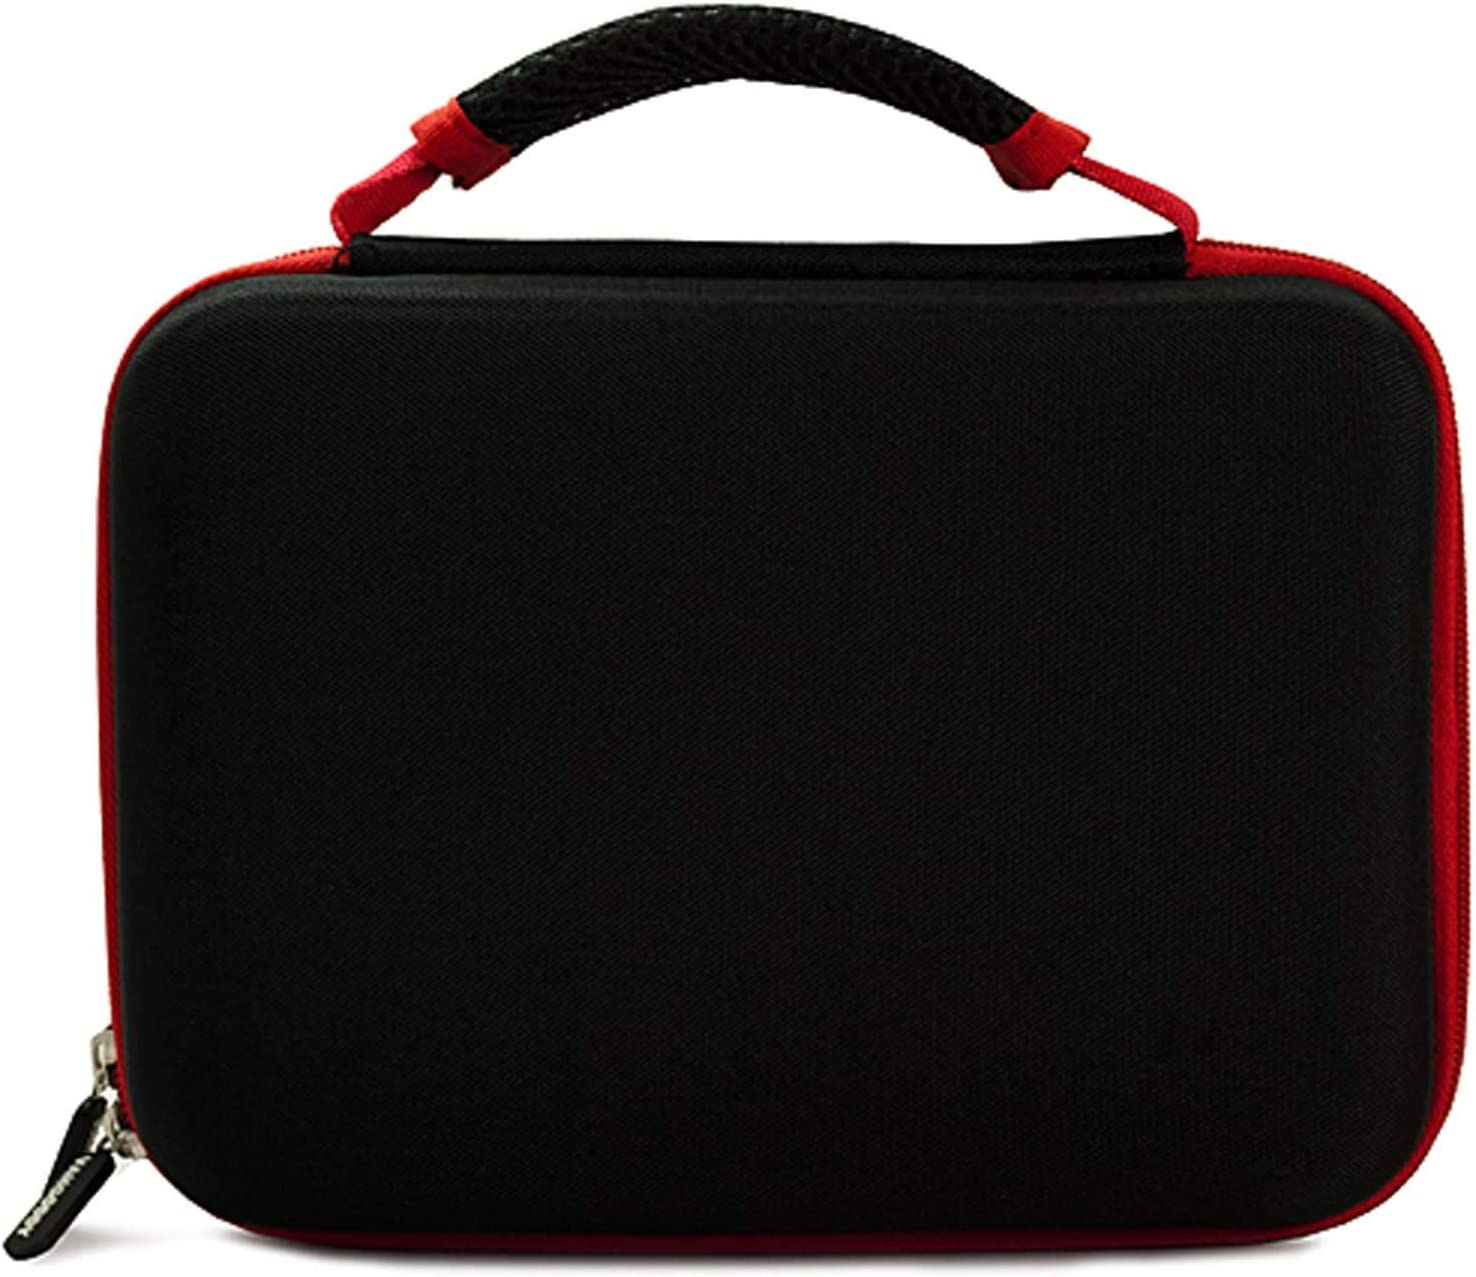 8 latest Inch Tablet Sleeve Accessories Max 53% OFF Home Organizer Case for Travel